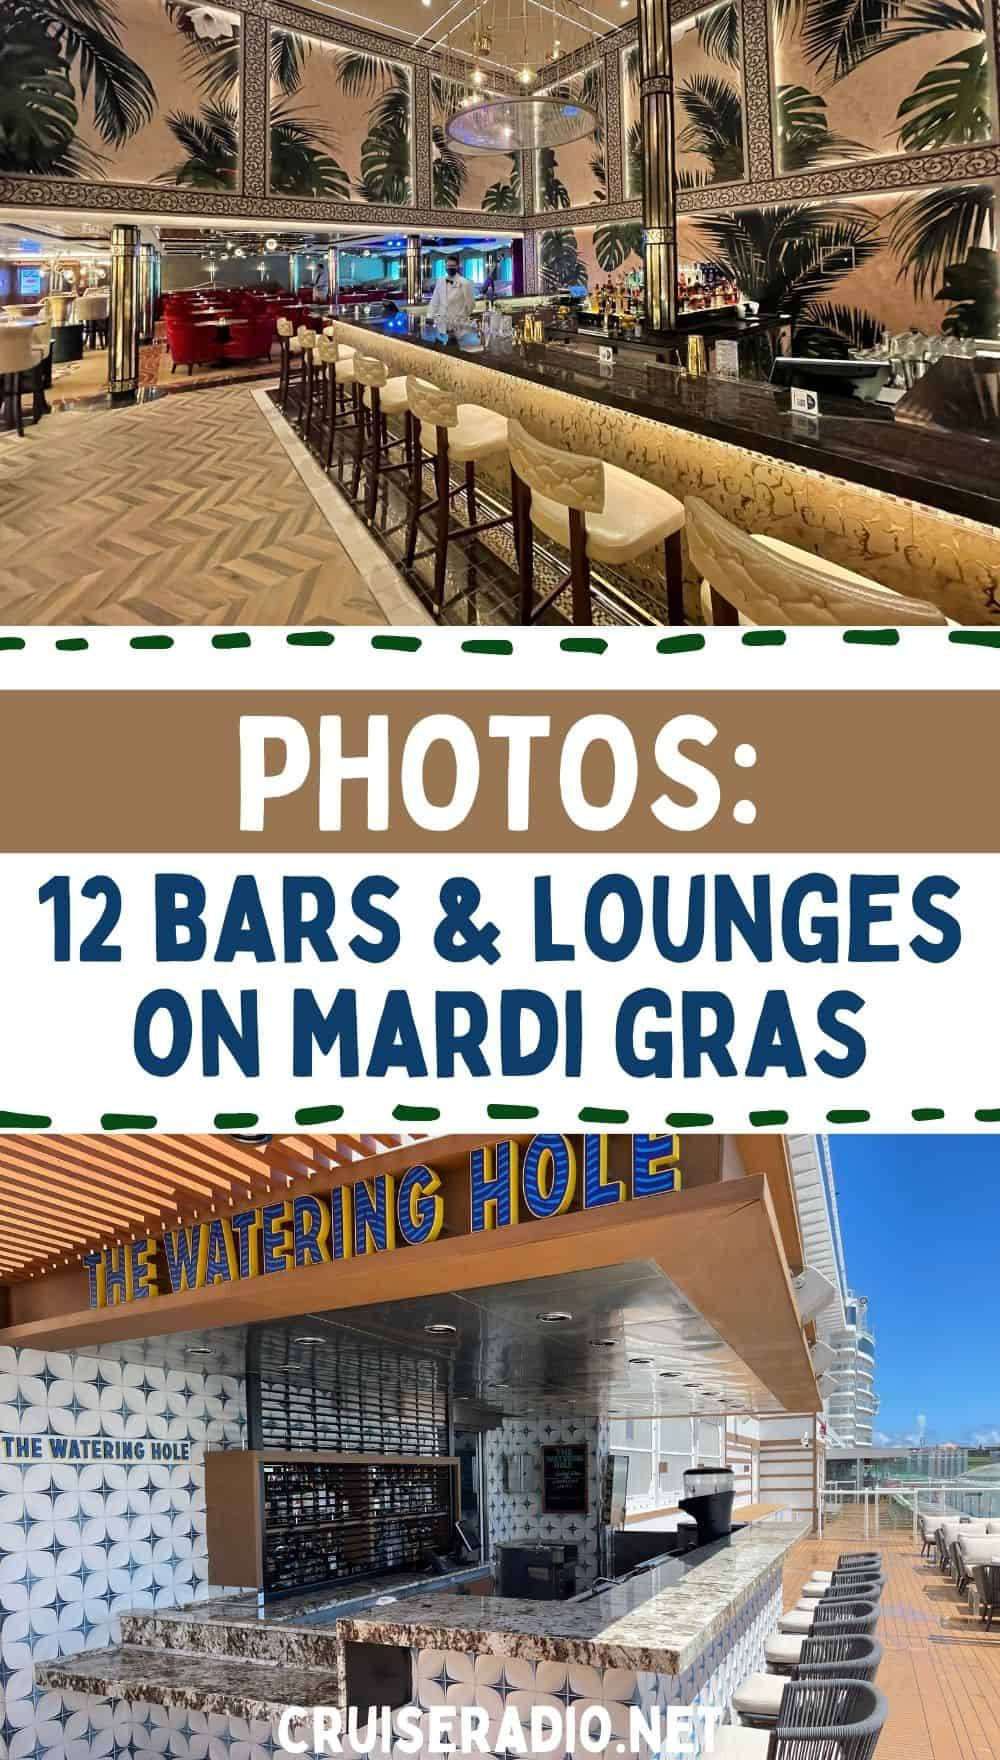 photos: 12 bars and lounges on mardi gras